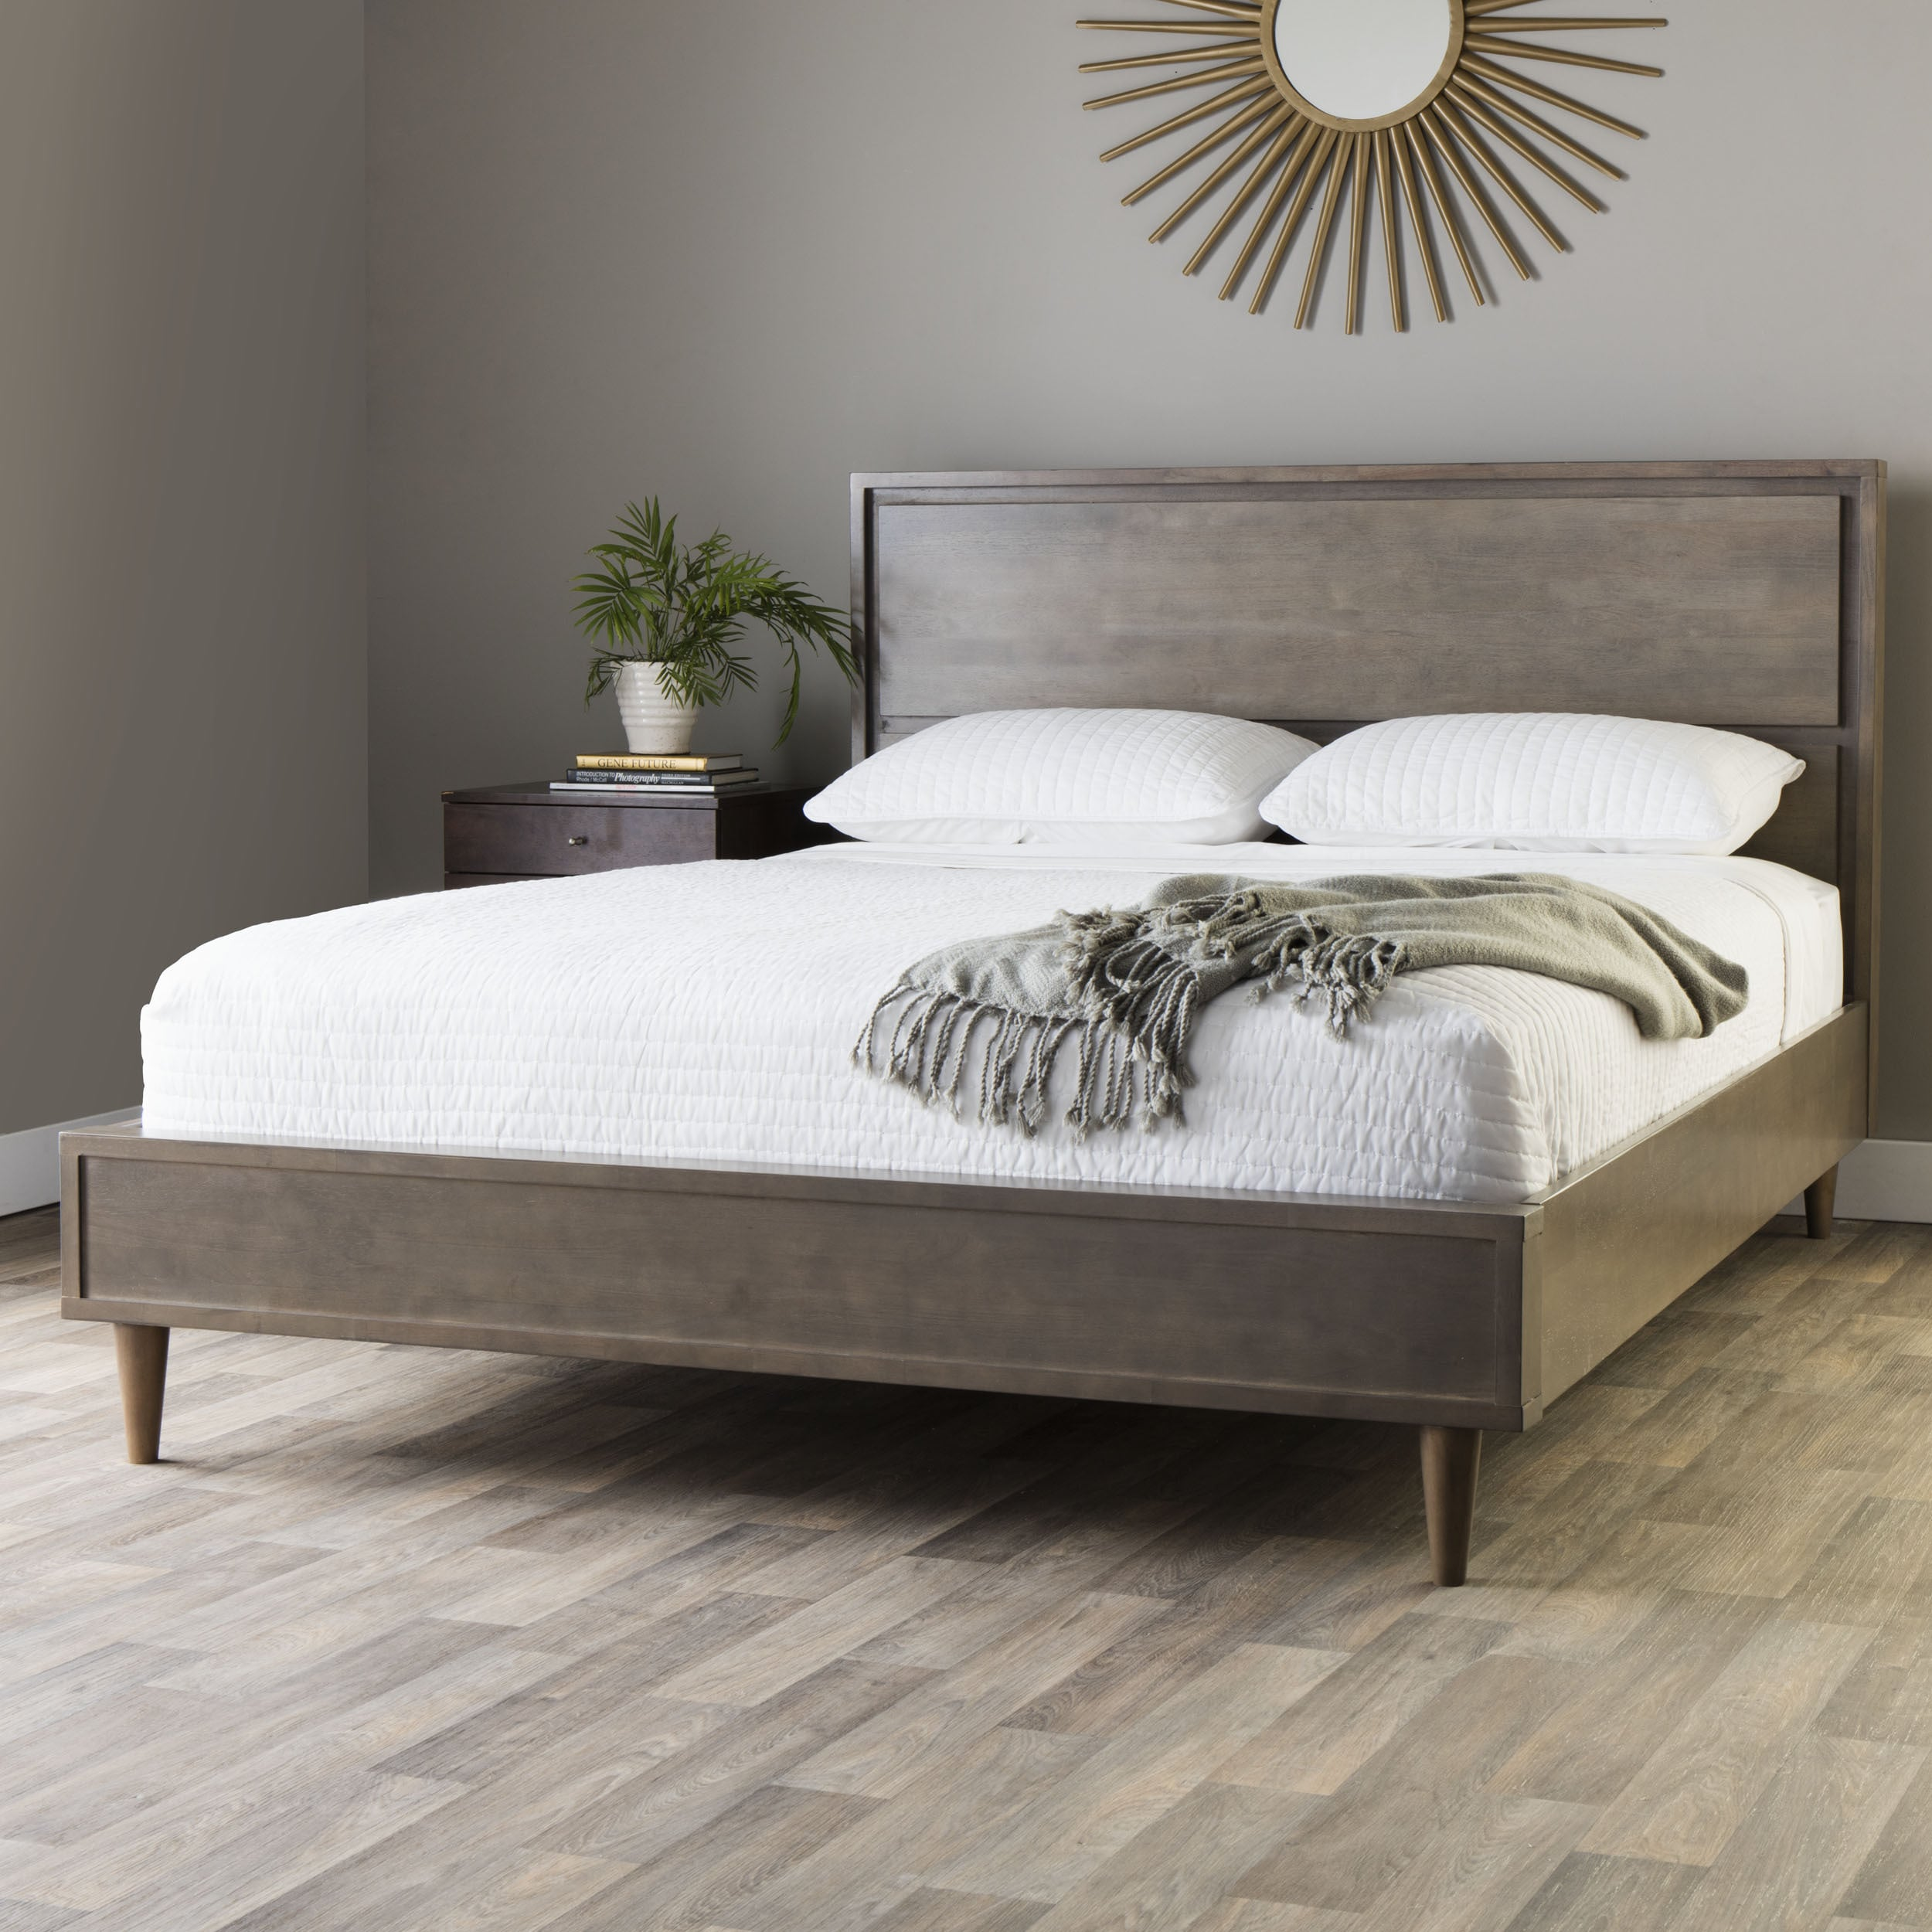 Details about Mid Century Queen Size Platform Bed Charcoal Grey Wood Modern  Bedroom Furniture